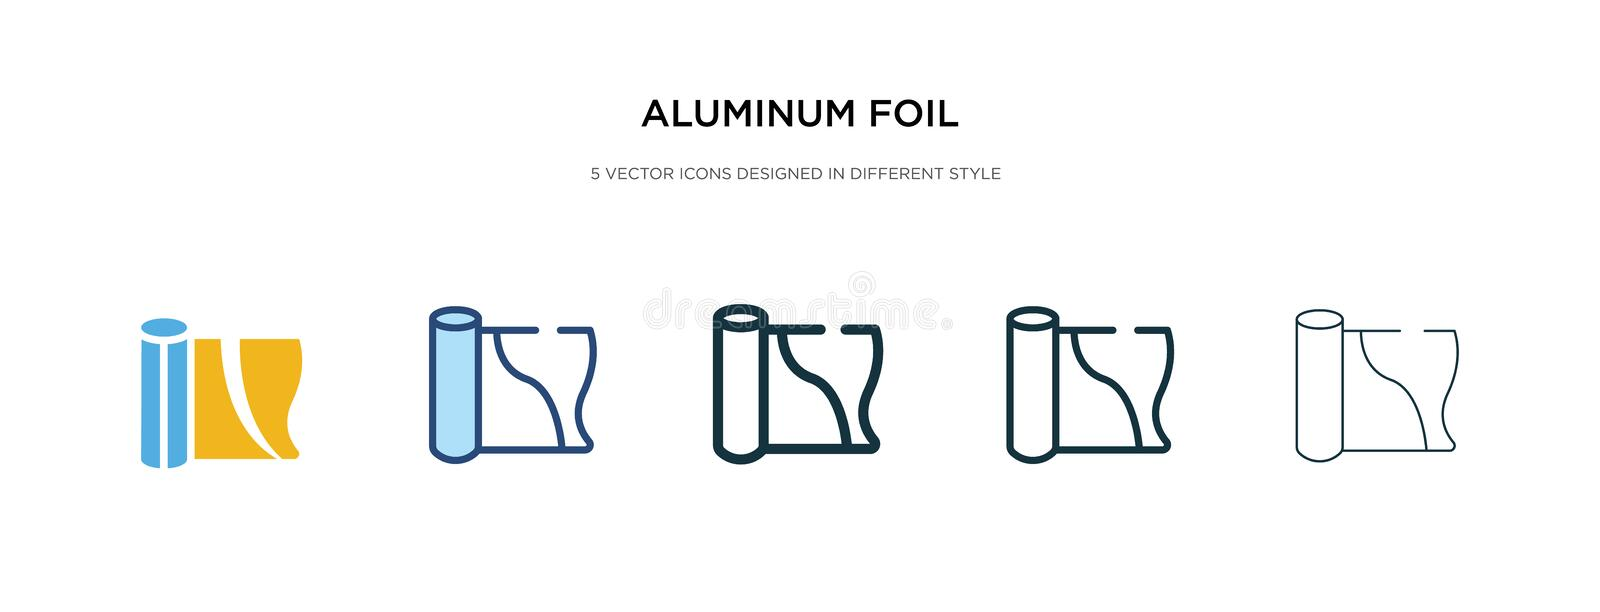 Aluminum foil icon in different style vector illustration. two colored and black aluminum foil vector icons designed in filled,. Outline, line and stroke style vector illustration